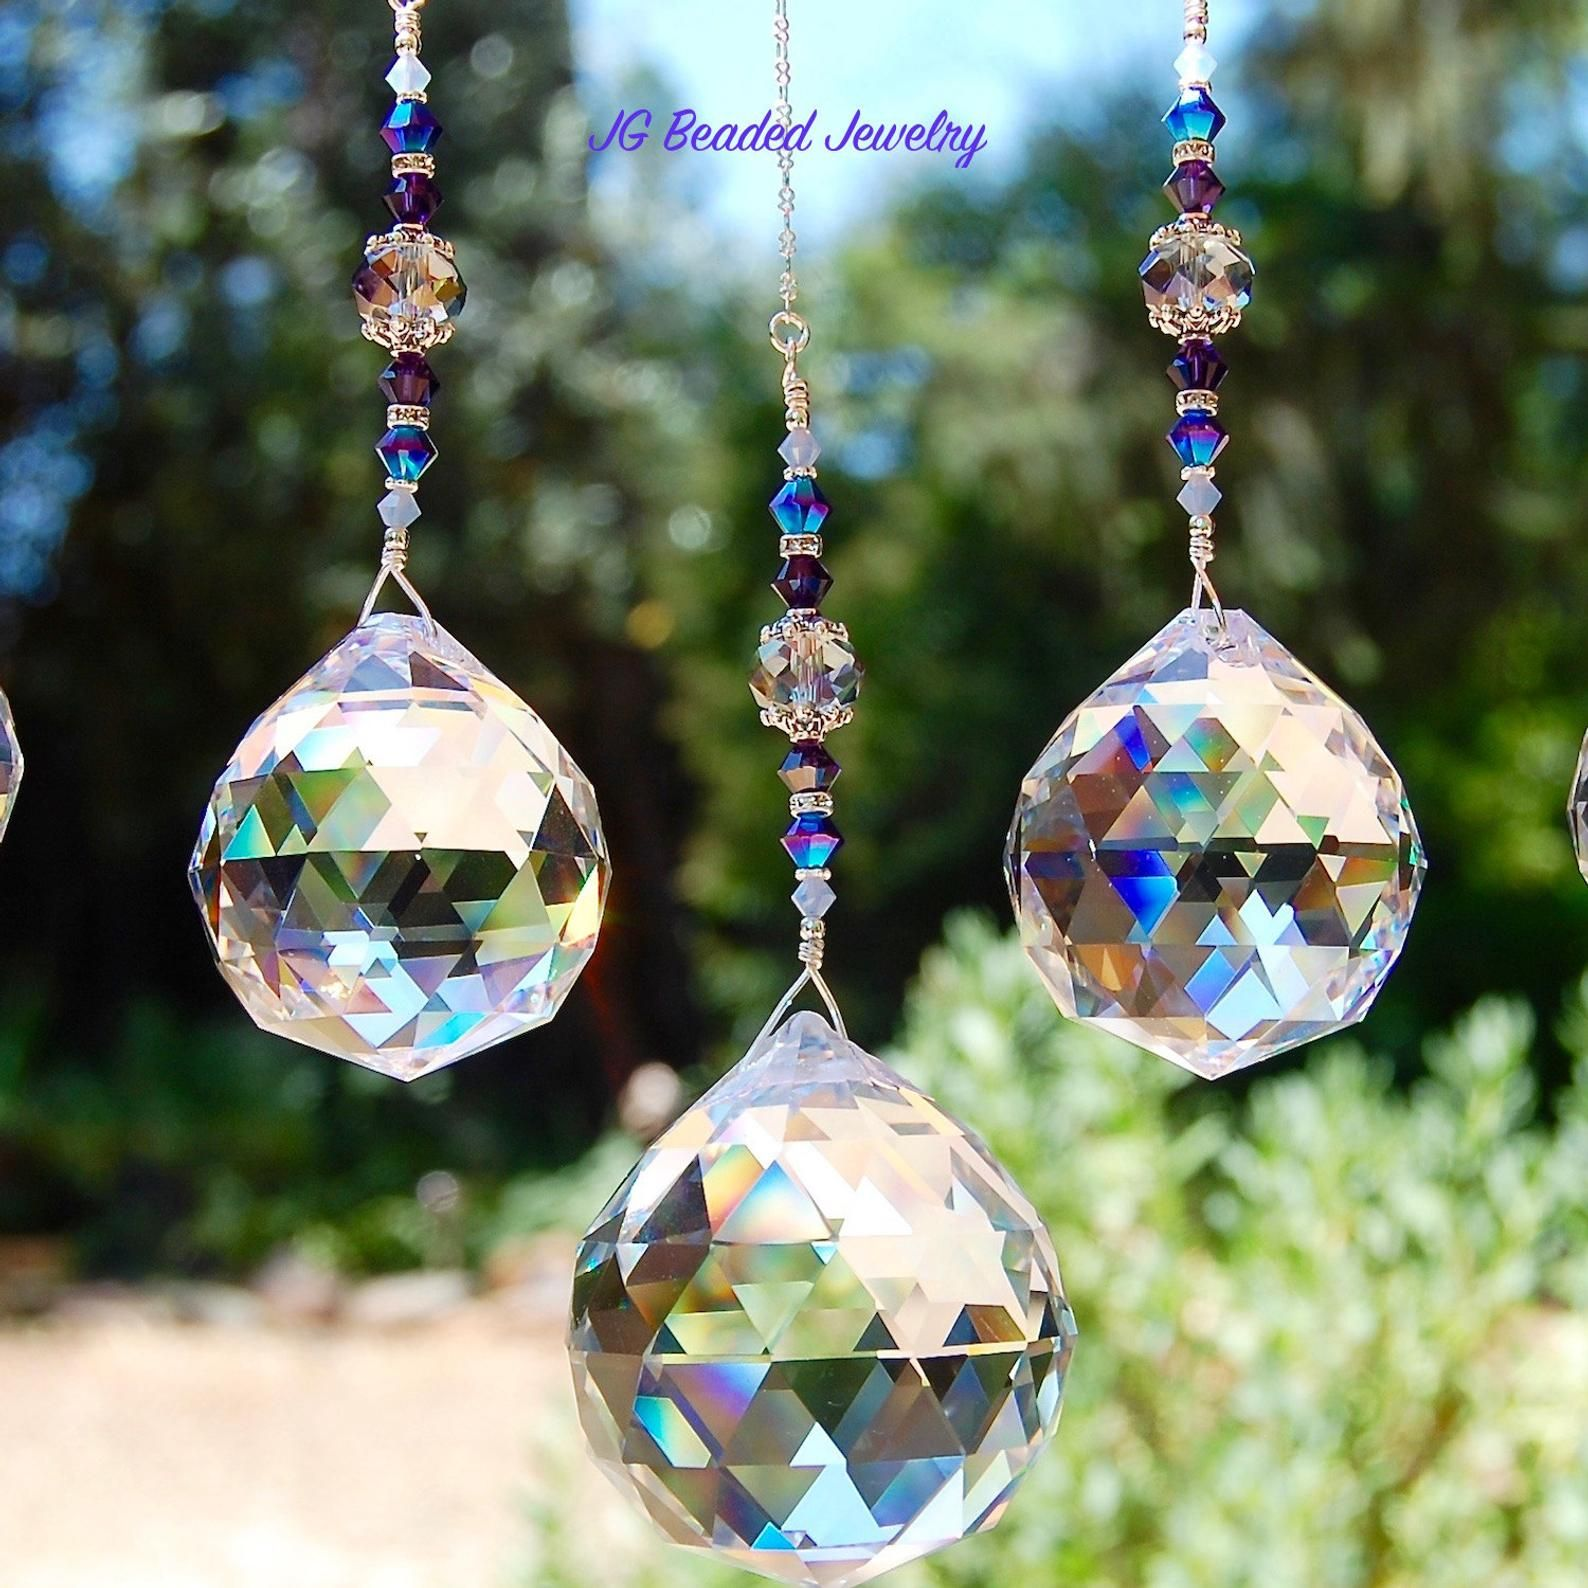 Hanging Prism Crystal Suncatcher Home Decor Rearview Mirror Ceiling Light Pull Fan Pull Car Charm 3 Sizes In 20mm 30mm 40mm Crystal Suncatchers Suncatchers Crystal Prisms